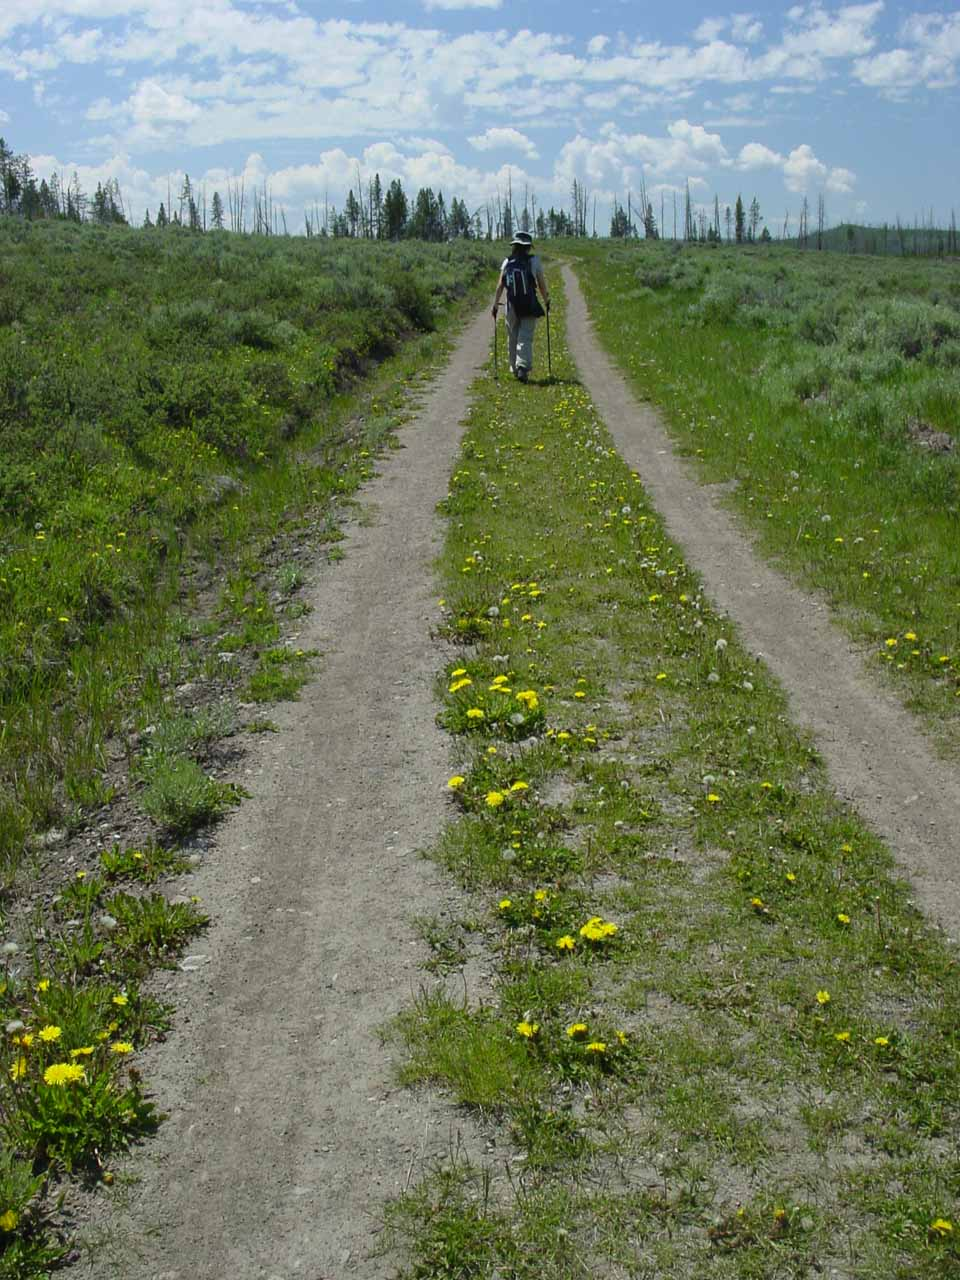 Julie walking on the 4x4 road with wildflowers in bloom before the thunderstorm overtook us